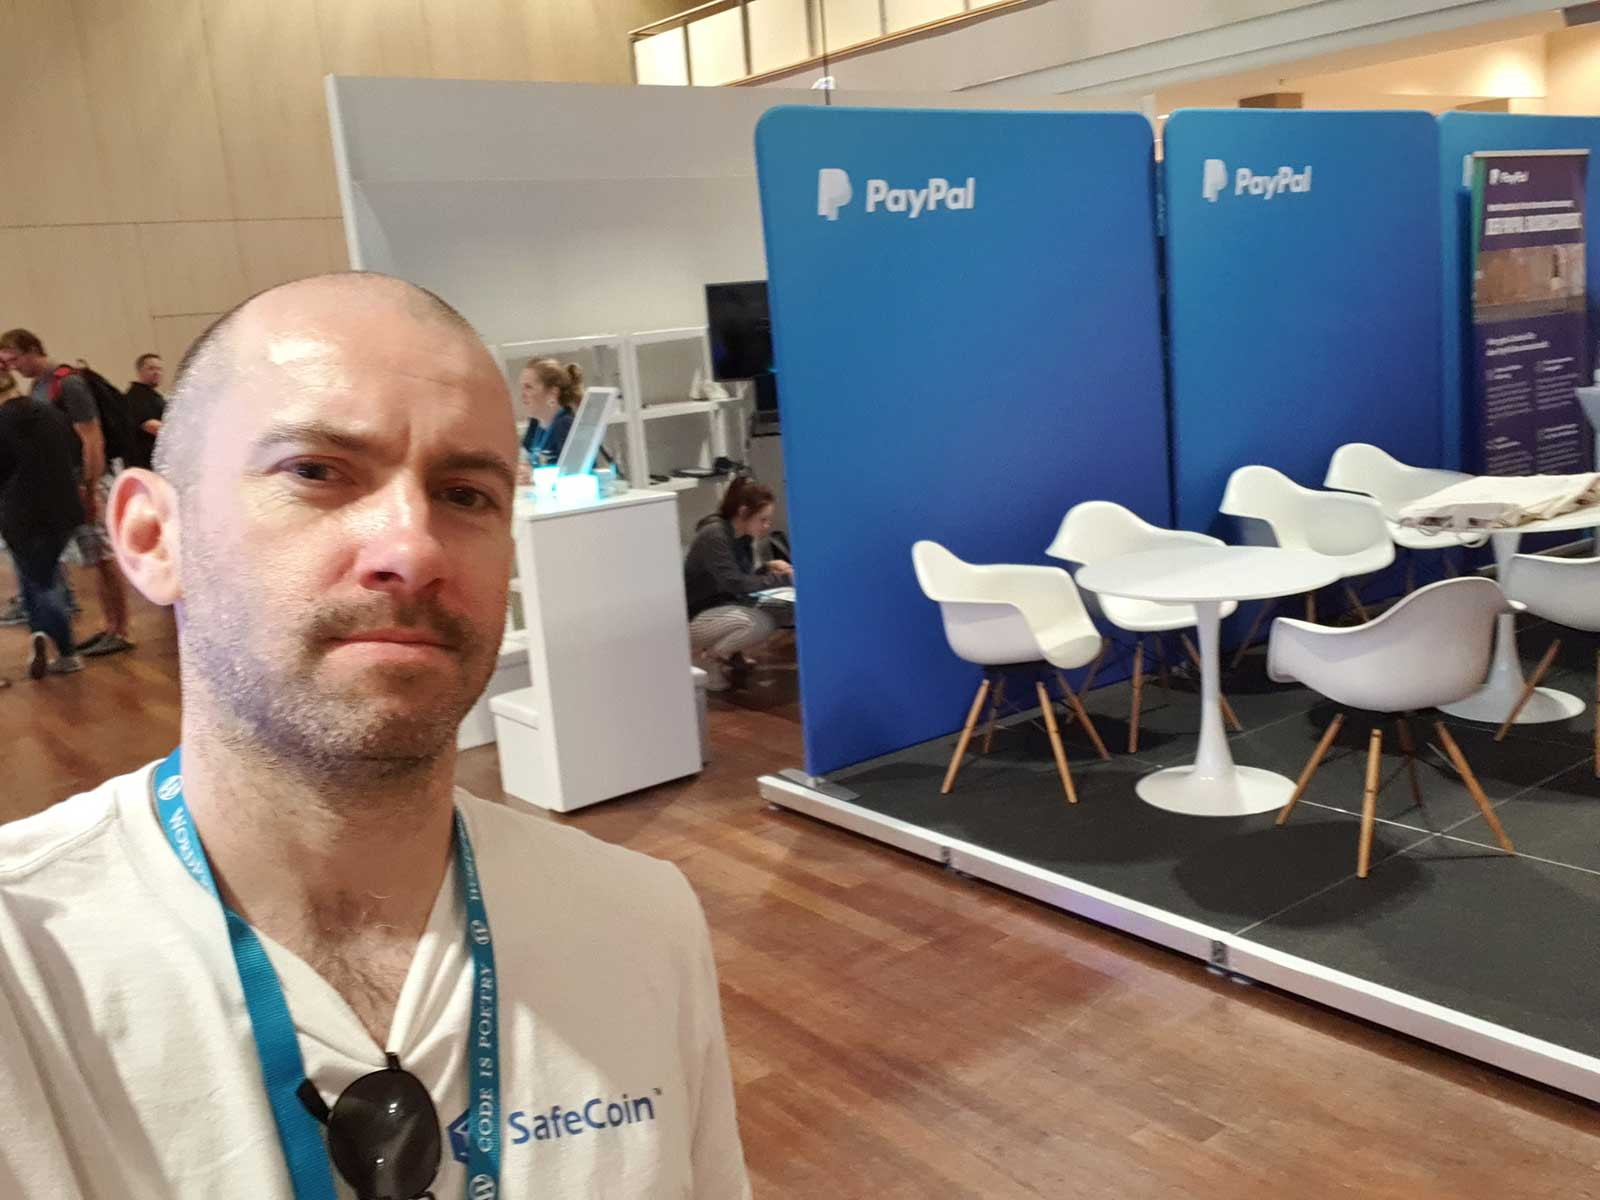 PayPal Booth